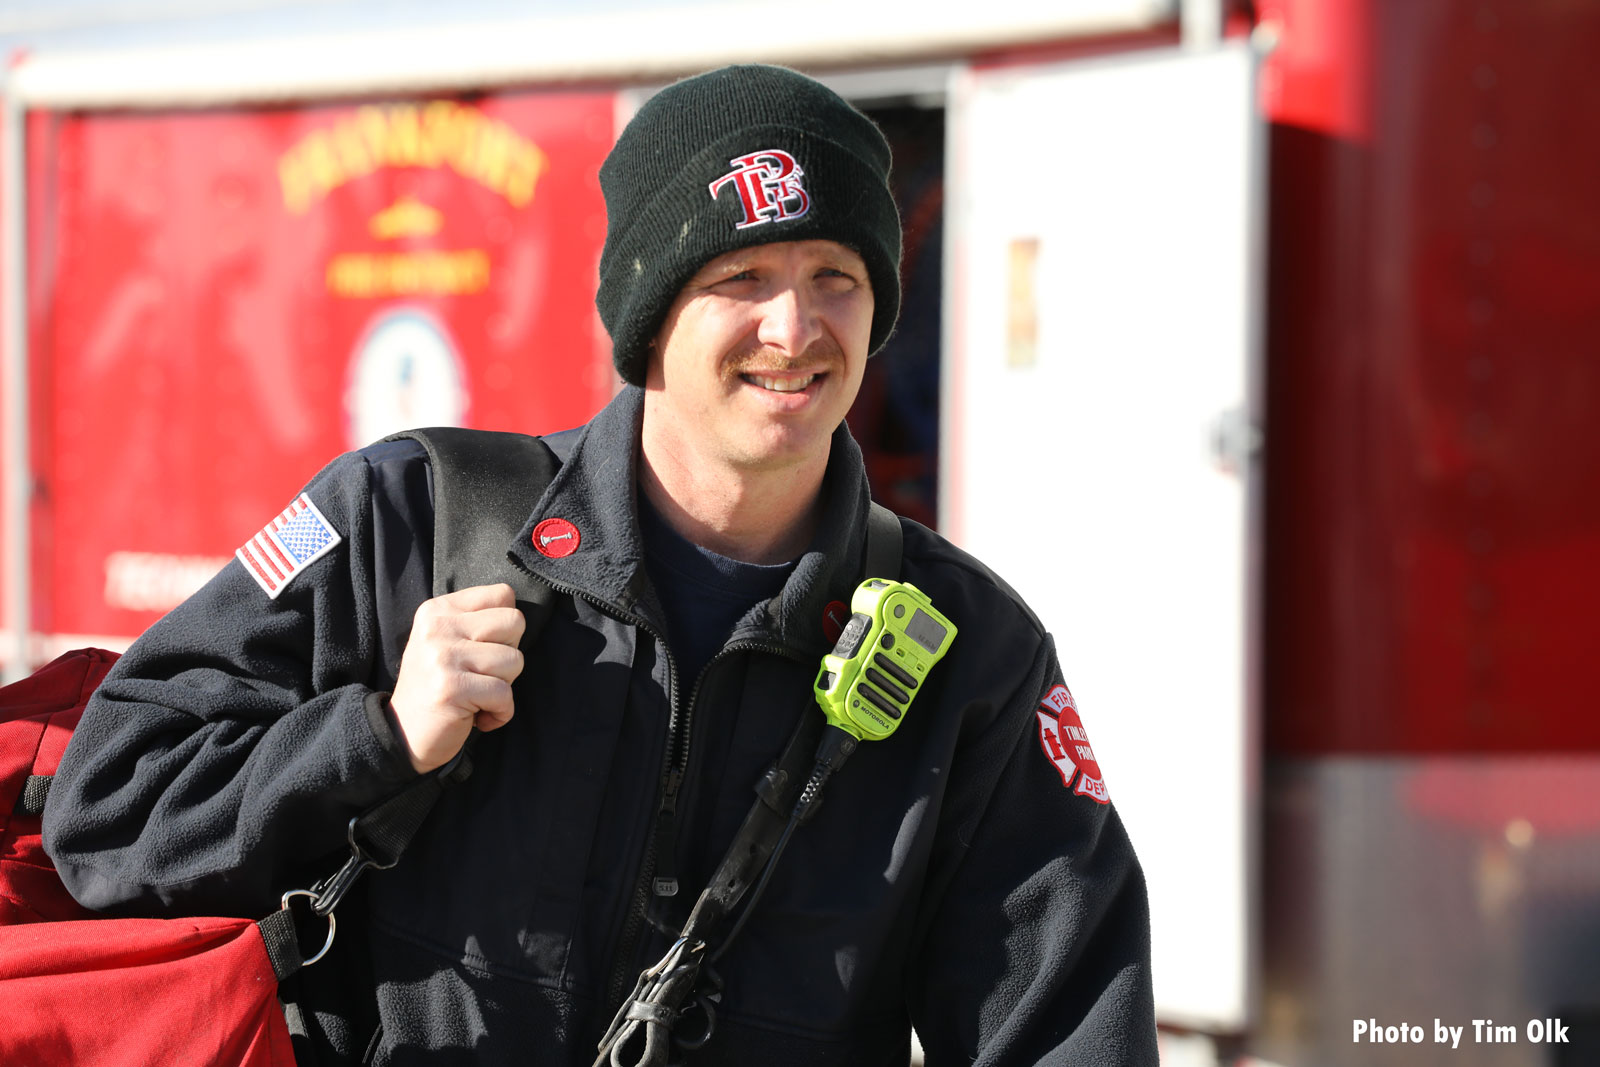 A firefighter on the scene of the rescue